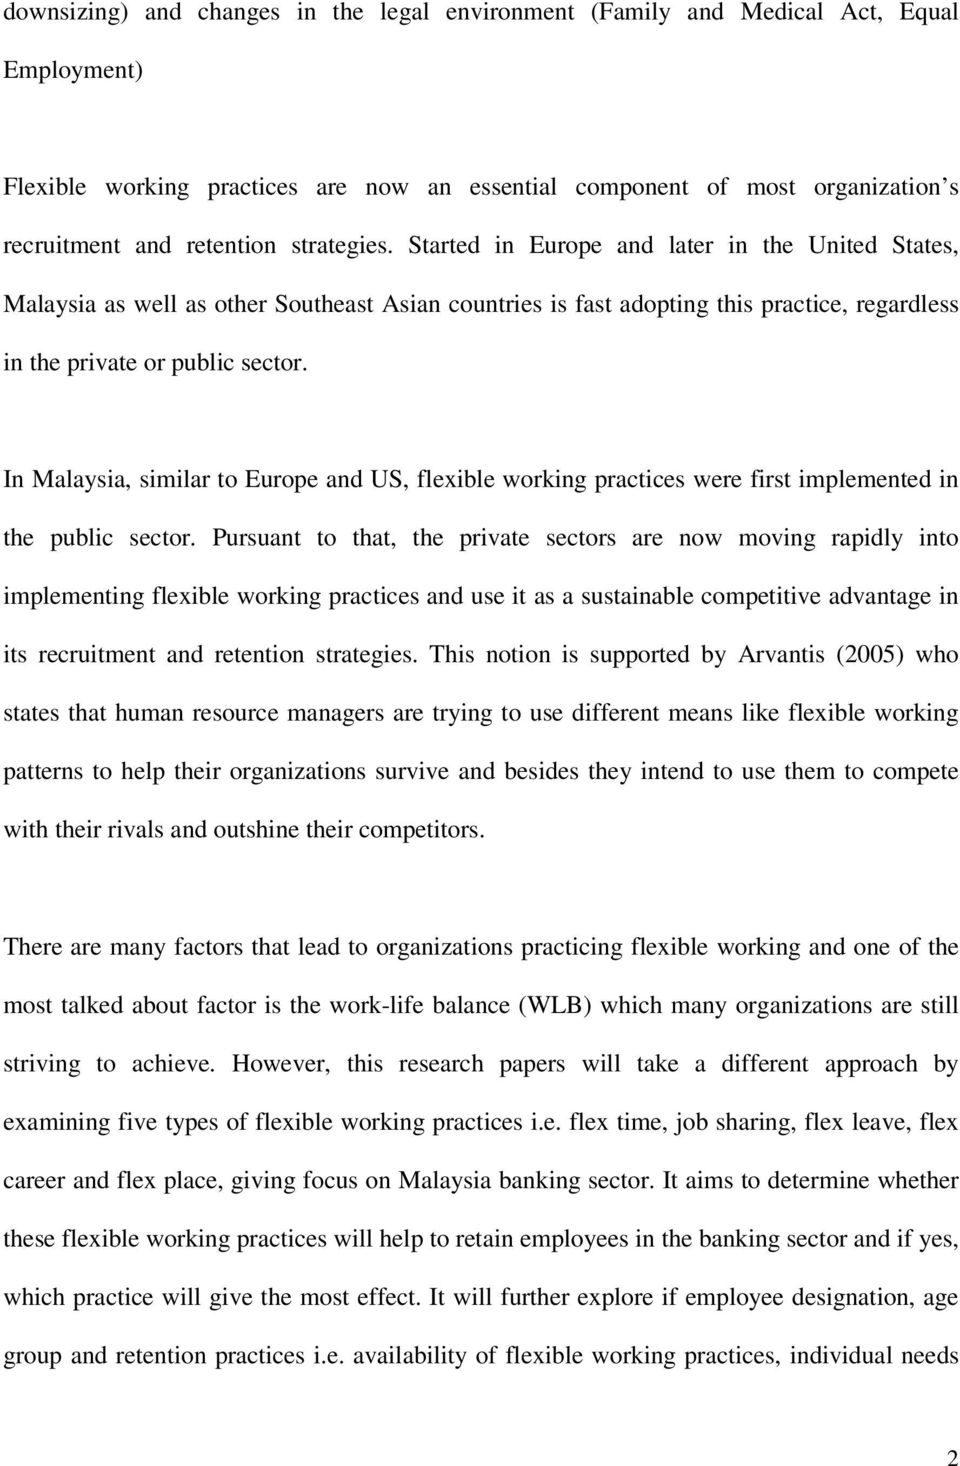 In Malaysia, similar to Europe and US, flexible working practices were first implemented in the public sector.